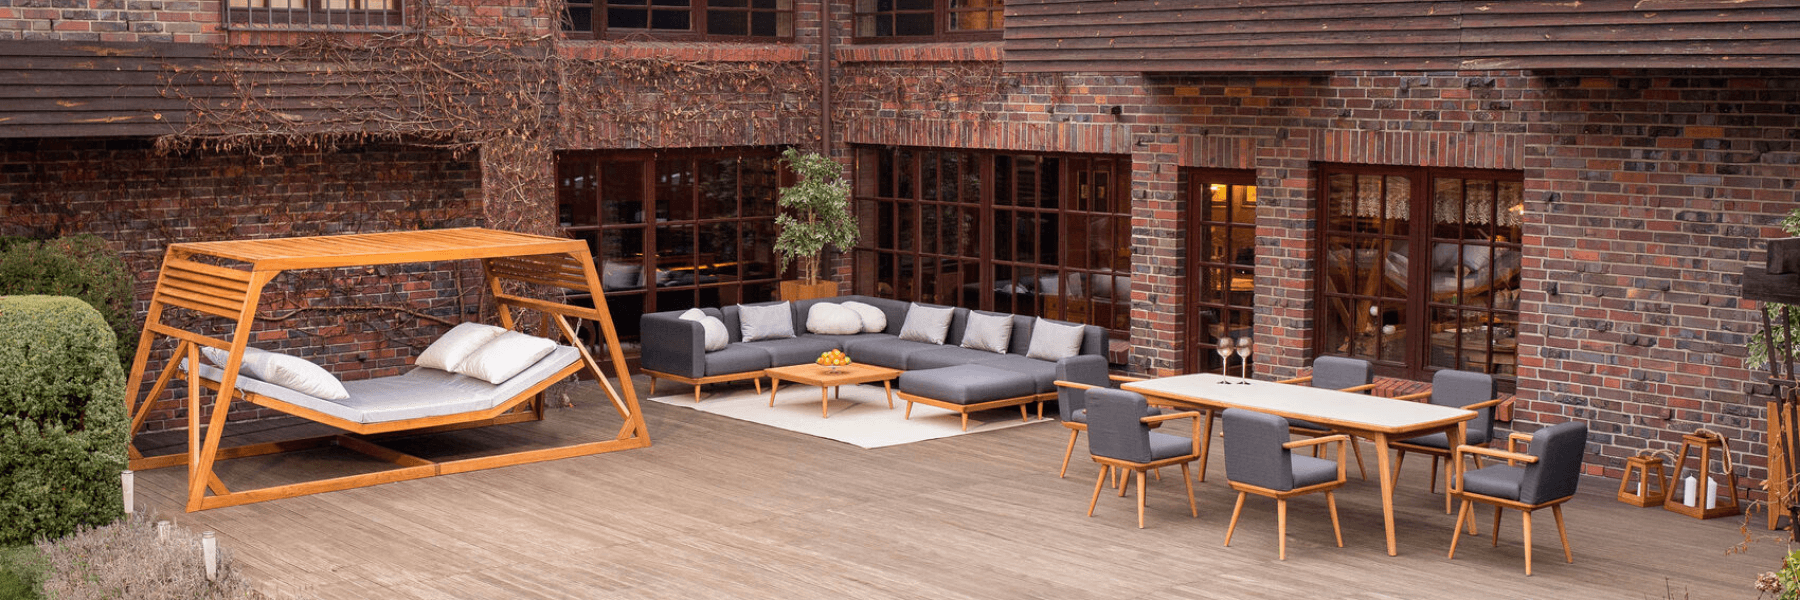 <p>Outdoor Furniture Leisure Collection Tempo Modern Range Display.</p> <p> </p> <p>Displaying a range of Leisure Collection Furniture from our Tempo, Progetto and additional items. Includes garden terrace hammock, a Progetto Table & six Armchairs as well as Tempo Sofas, Armchair modular set with cushions.</p> <p> </p> <p>Fabric Cushions, nice to touch and clean. Durable in external conditions.</p> <p> </p> <p>A demonstration of how 2 of our unique sets within the Leisure Collection range compliment each other on a patio, decking area whether at a hotel or in a domestic setting.</p>